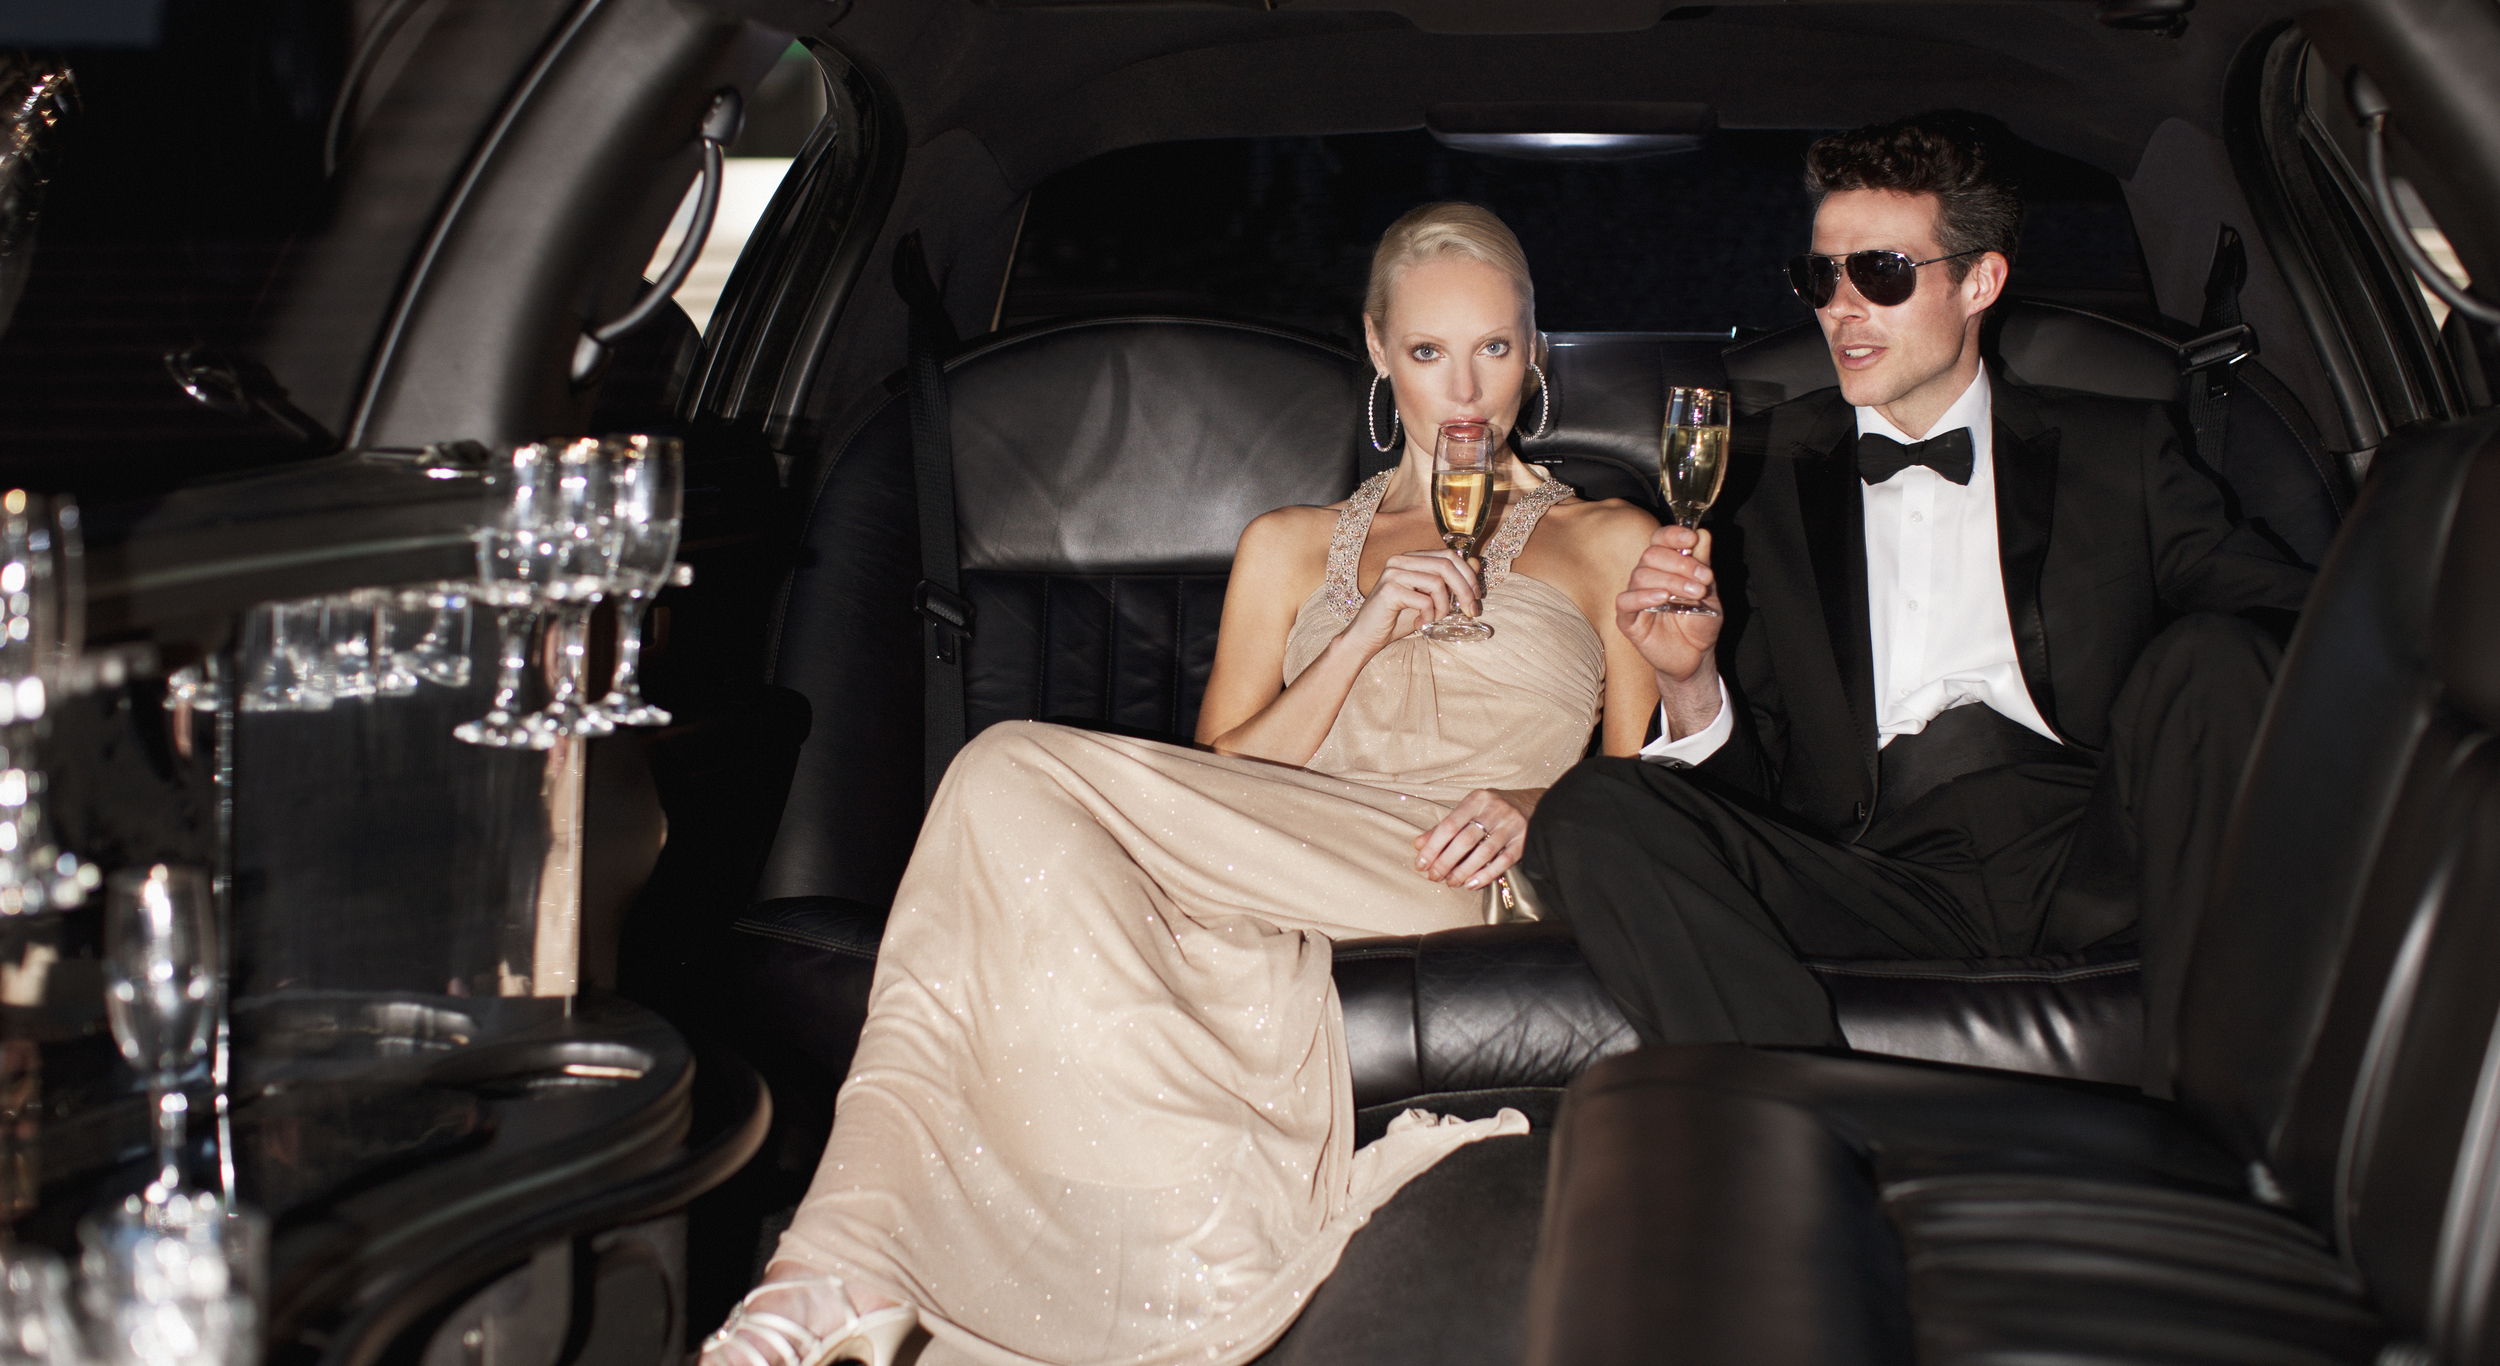 New Years limo